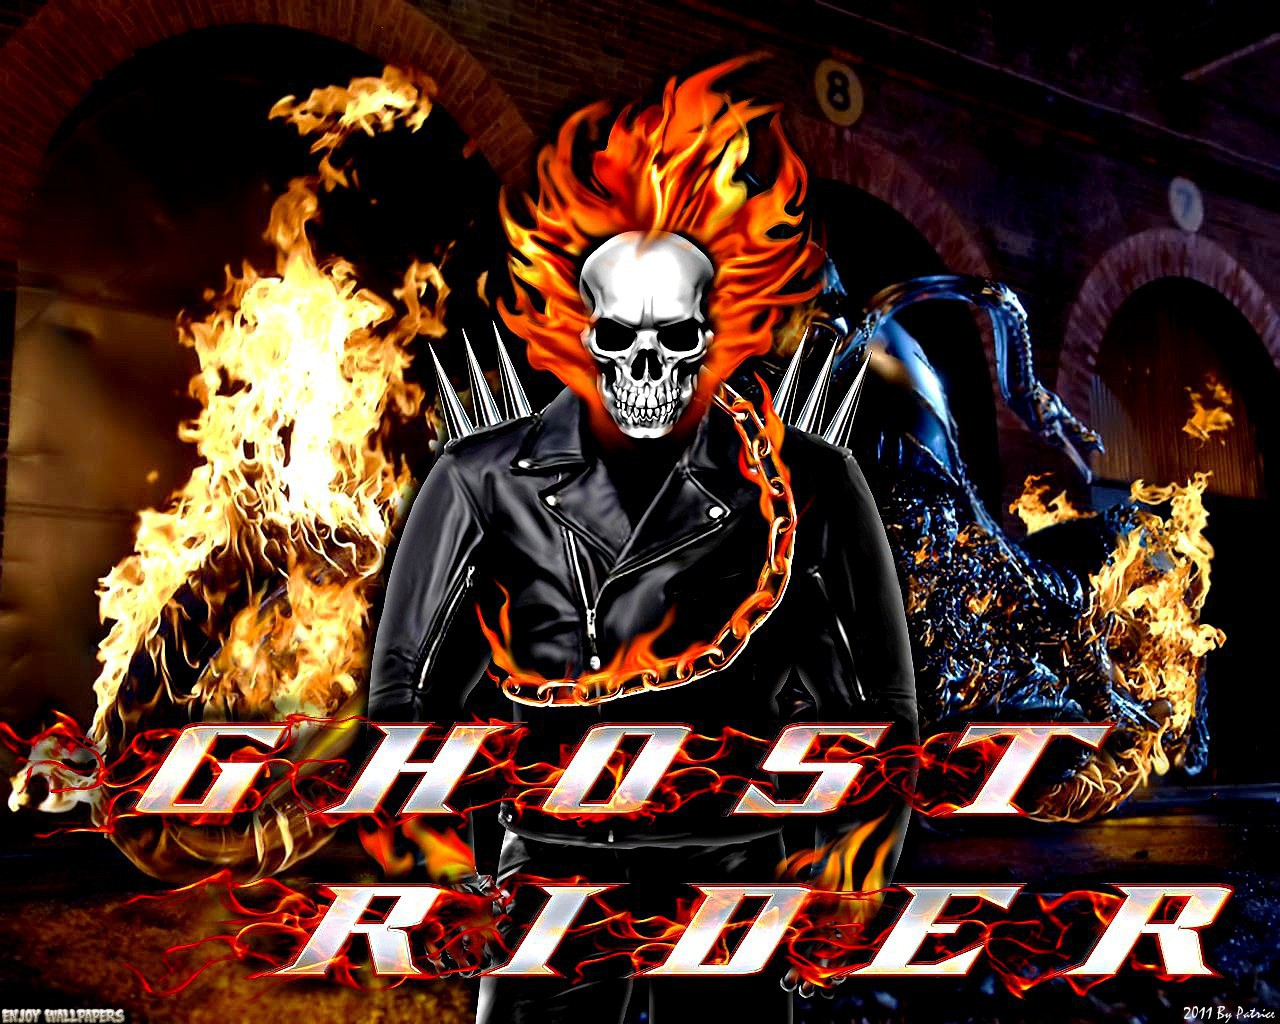 http://2.bp.blogspot.com/-3Cy4IbUDLbU/Tvb3nWA6mXI/AAAAAAAABsE/zOgpTrab45c/s1600/ghost+rider+wallpaper-takeaweirdbreak.blogspot.com-Ghost+Rider+2+Wallpaper+1280x1024+By+Patrice.jpg